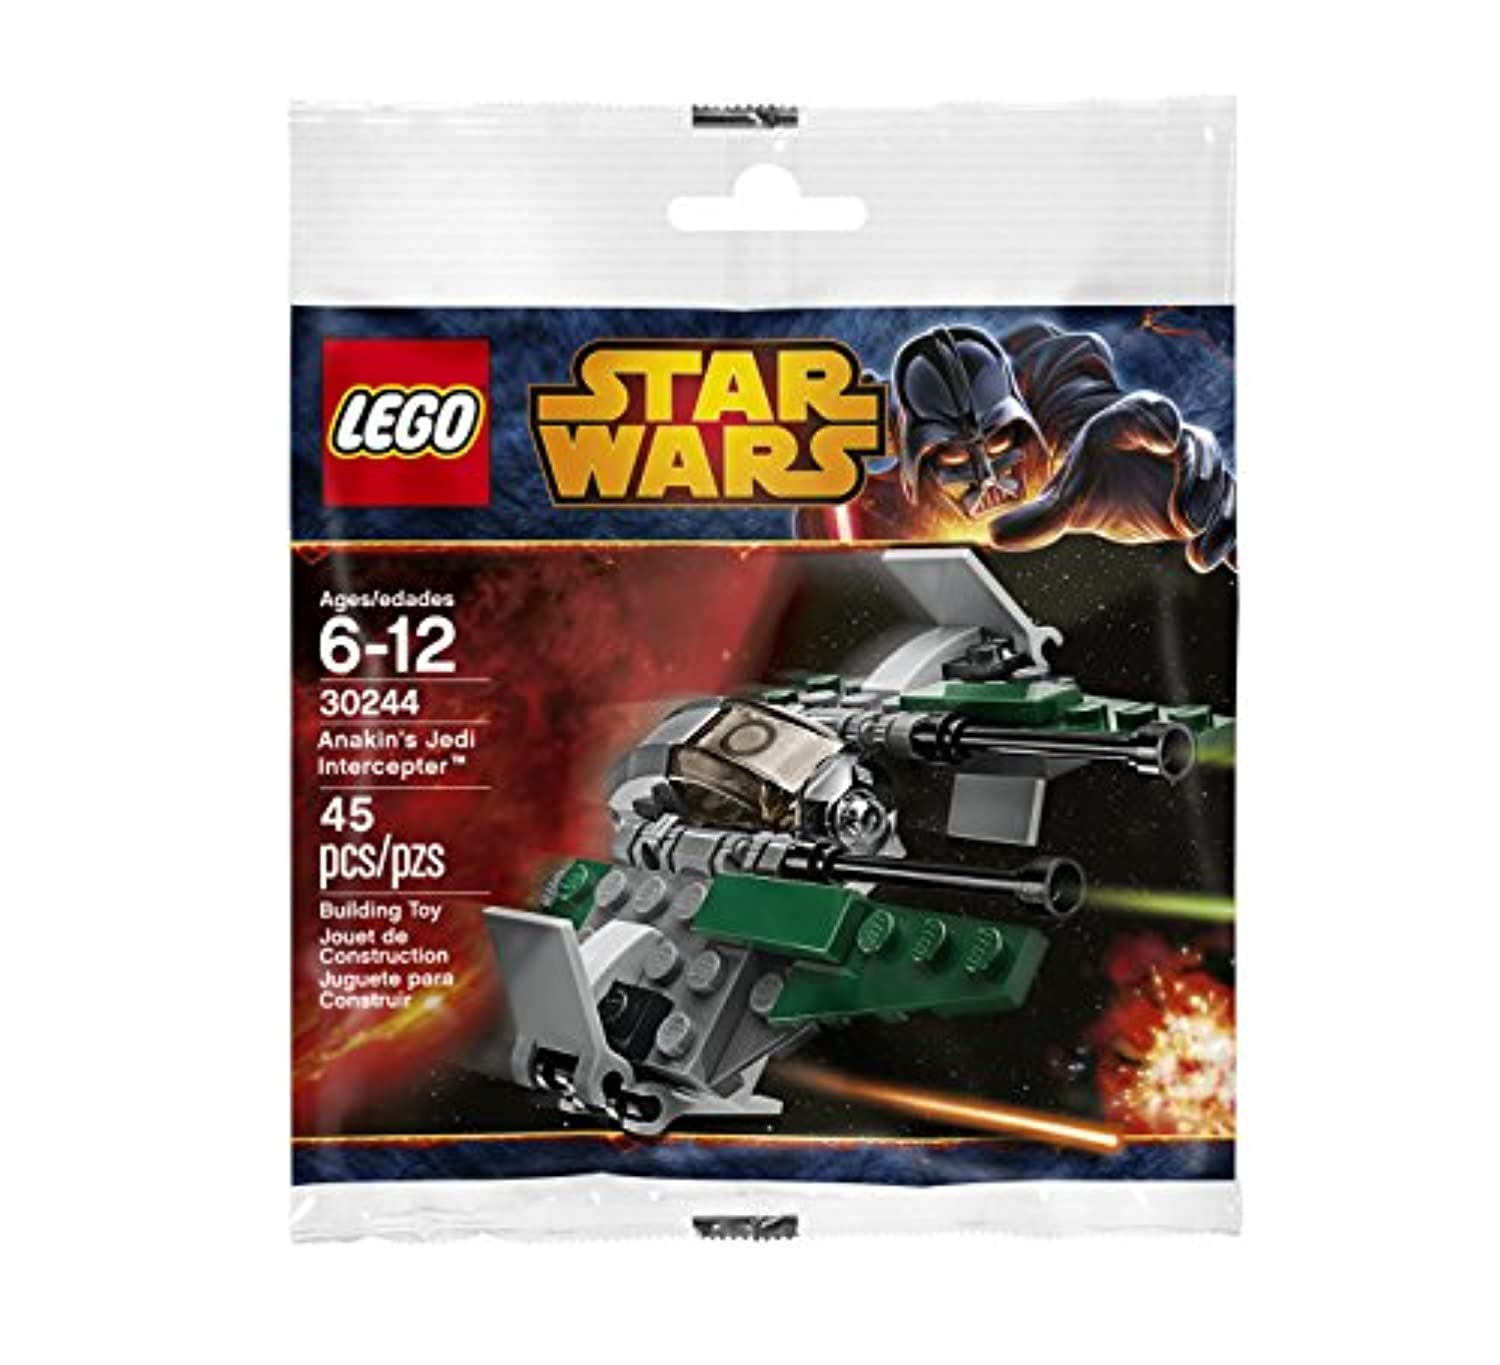 LEGO Star Wars: Anakin's Jedi Interceptor セット 30244 (袋詰め)